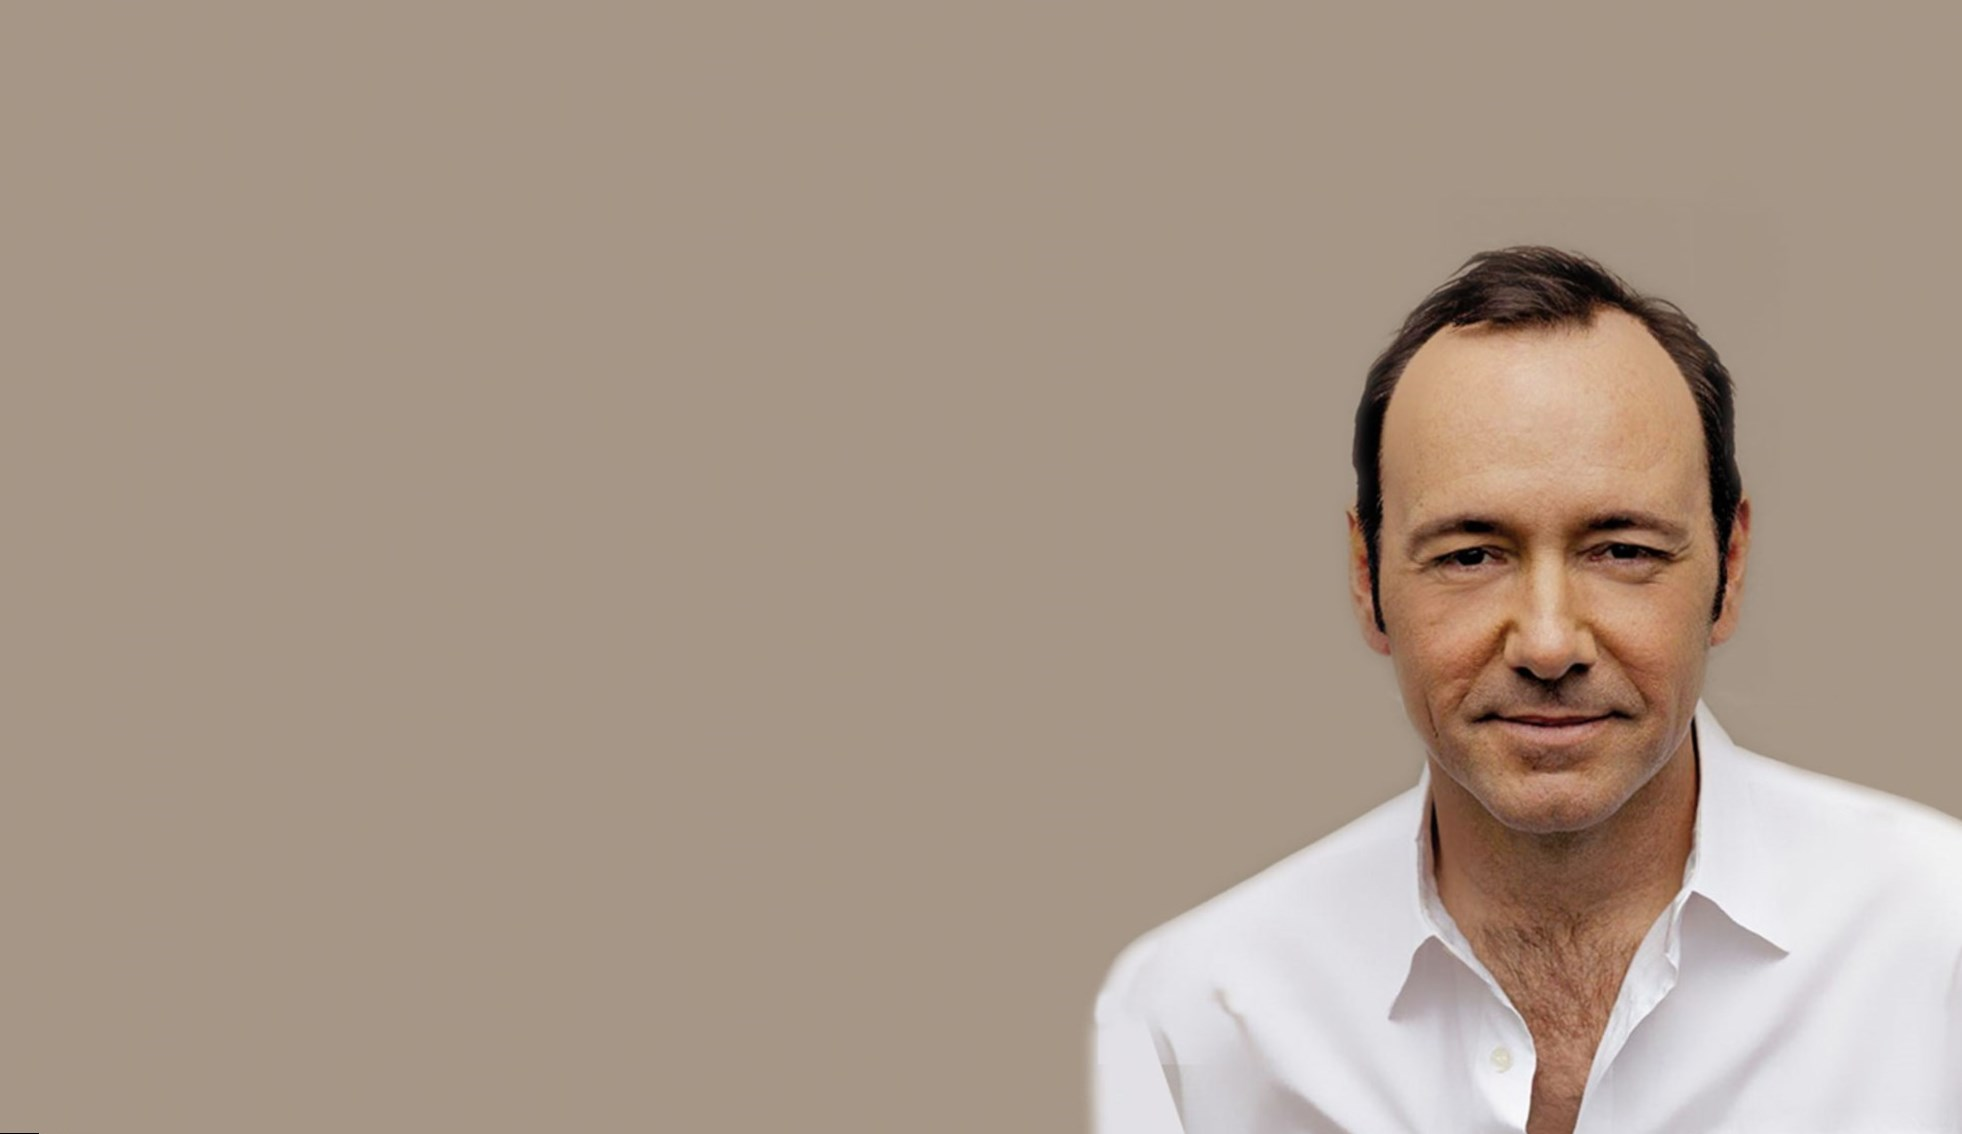 the life and career of the american actor kevin spacey Kevin spacey is an american actor, director, singer and producer born on july 26, 1959, spacey began his acting career in the early 1980s performing on the new york city stage.